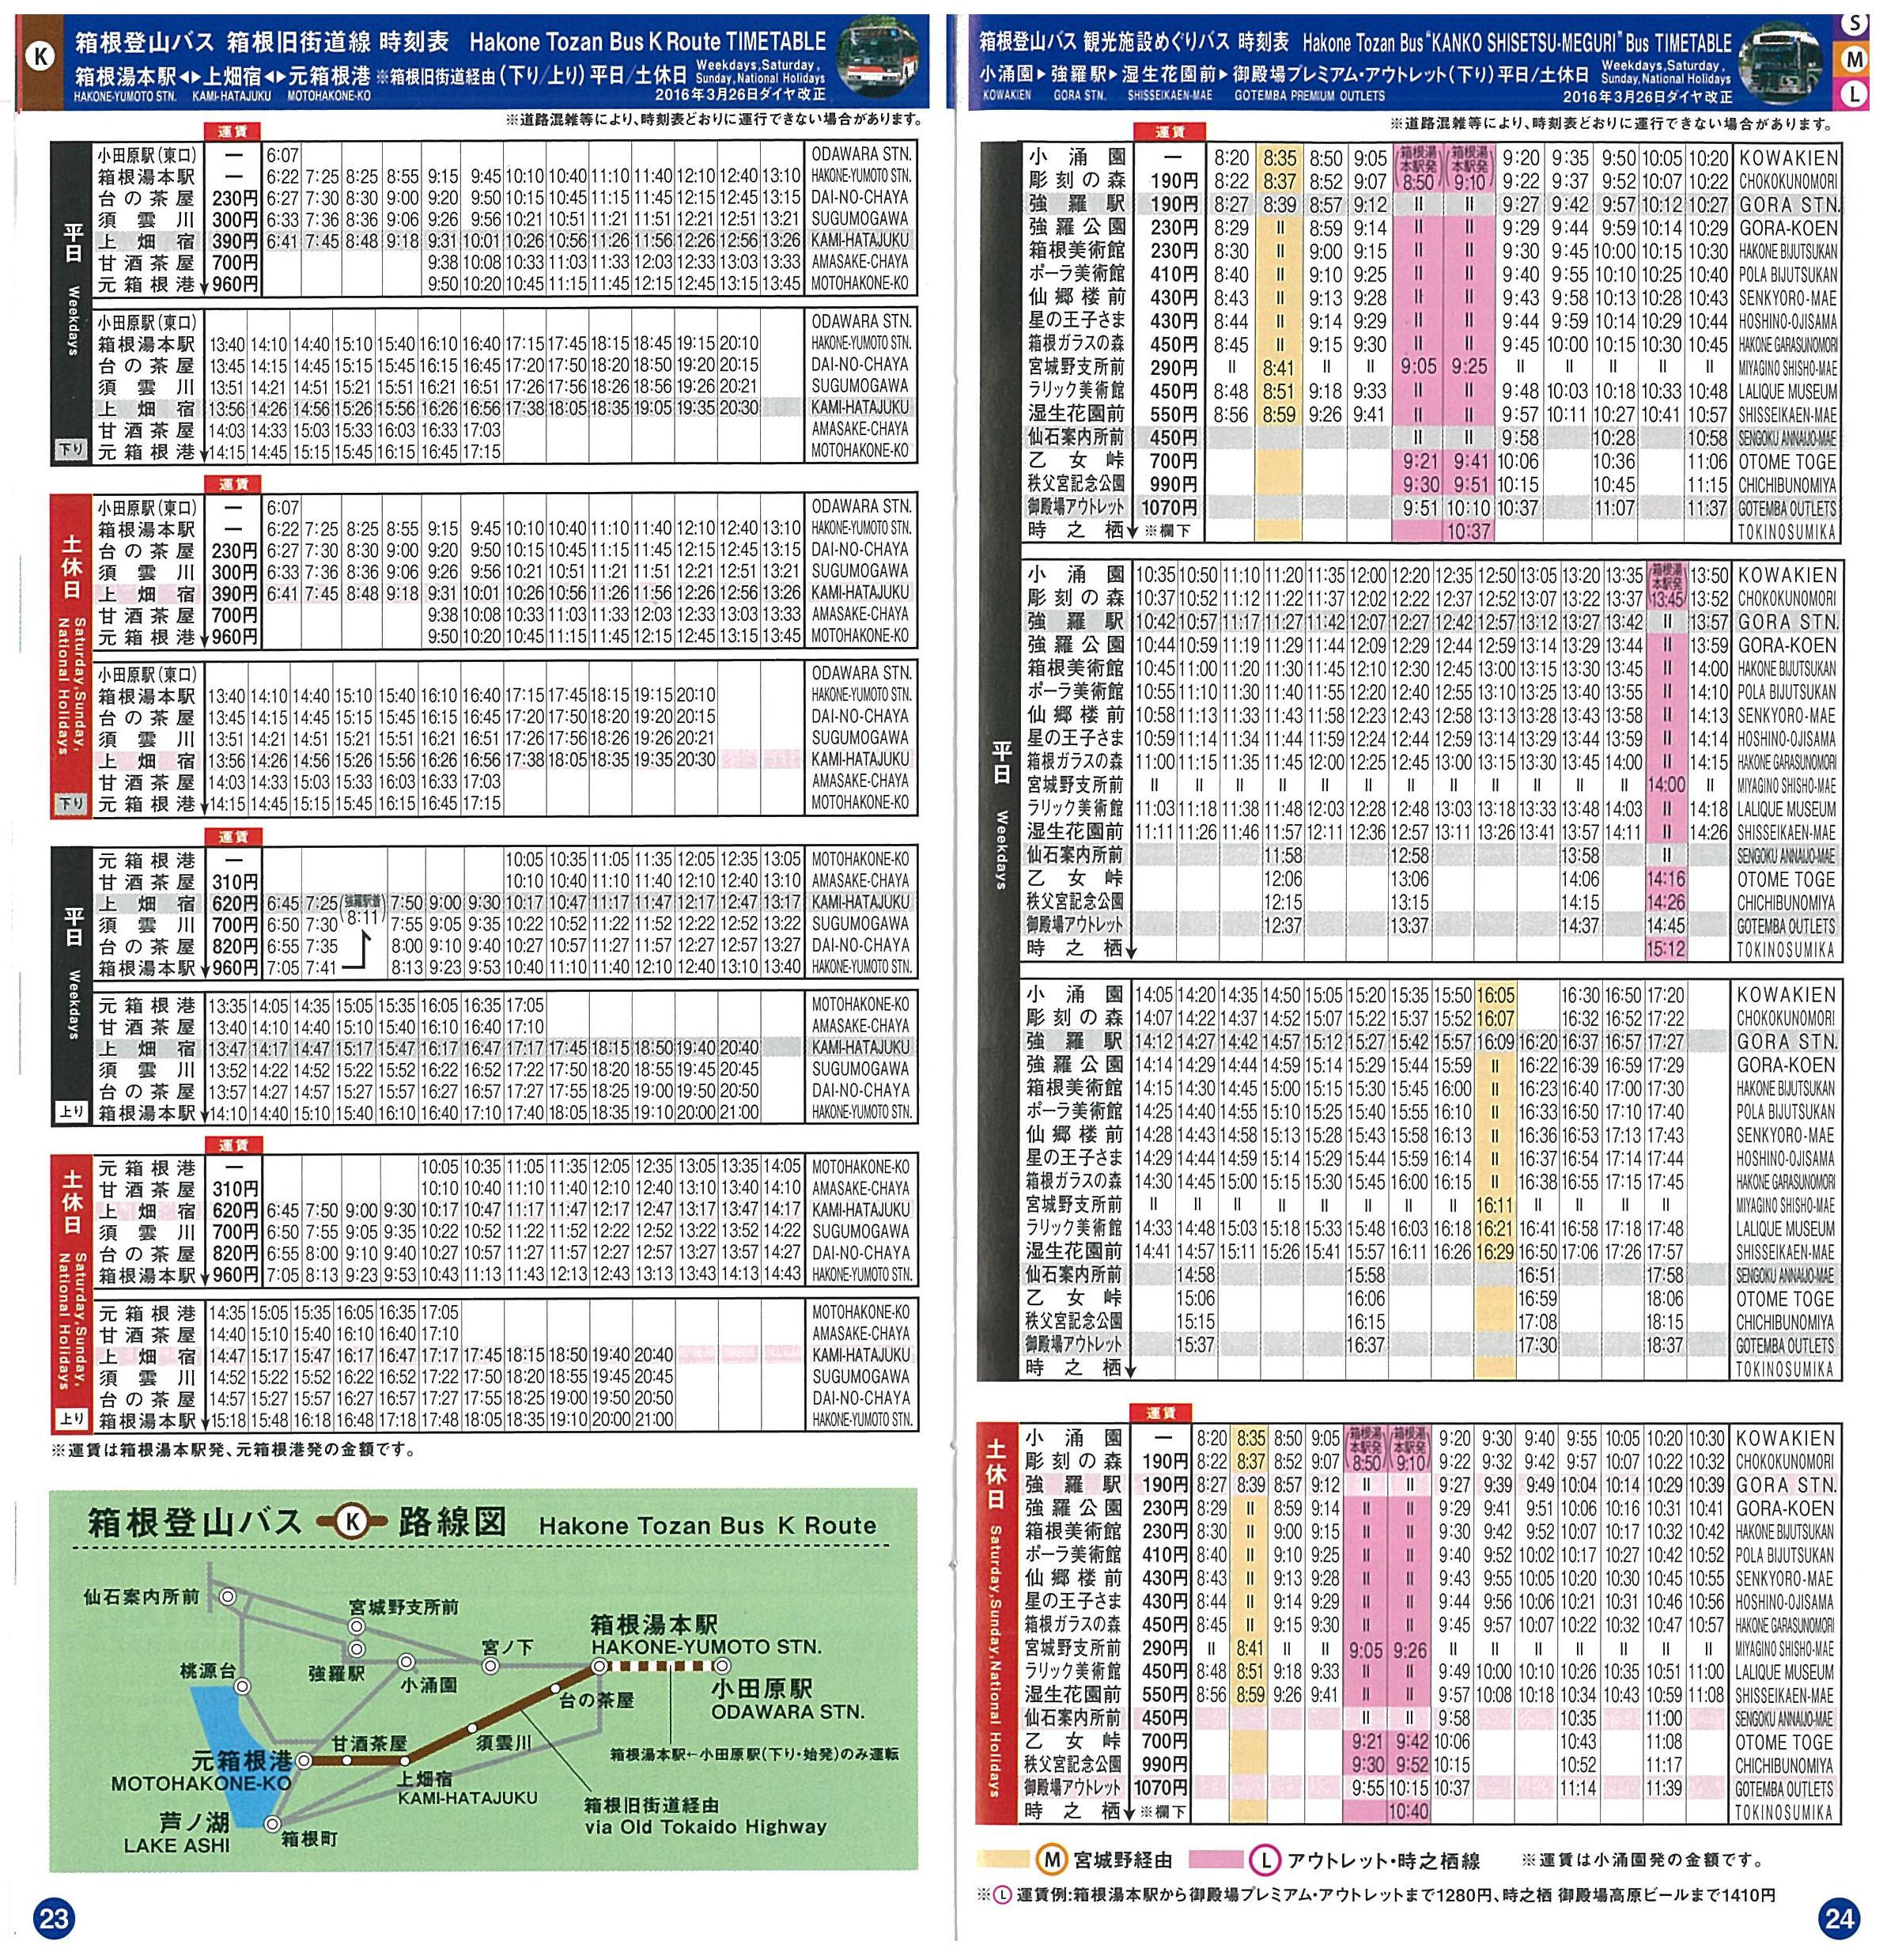 [Continuation] Day Trip from Tokyo : Hakone 箱根. Maps and timeteables. Pages 23 and 24. Hakone Tozan Bus K Route Timetables 箱根登山バス K 線 時刻表